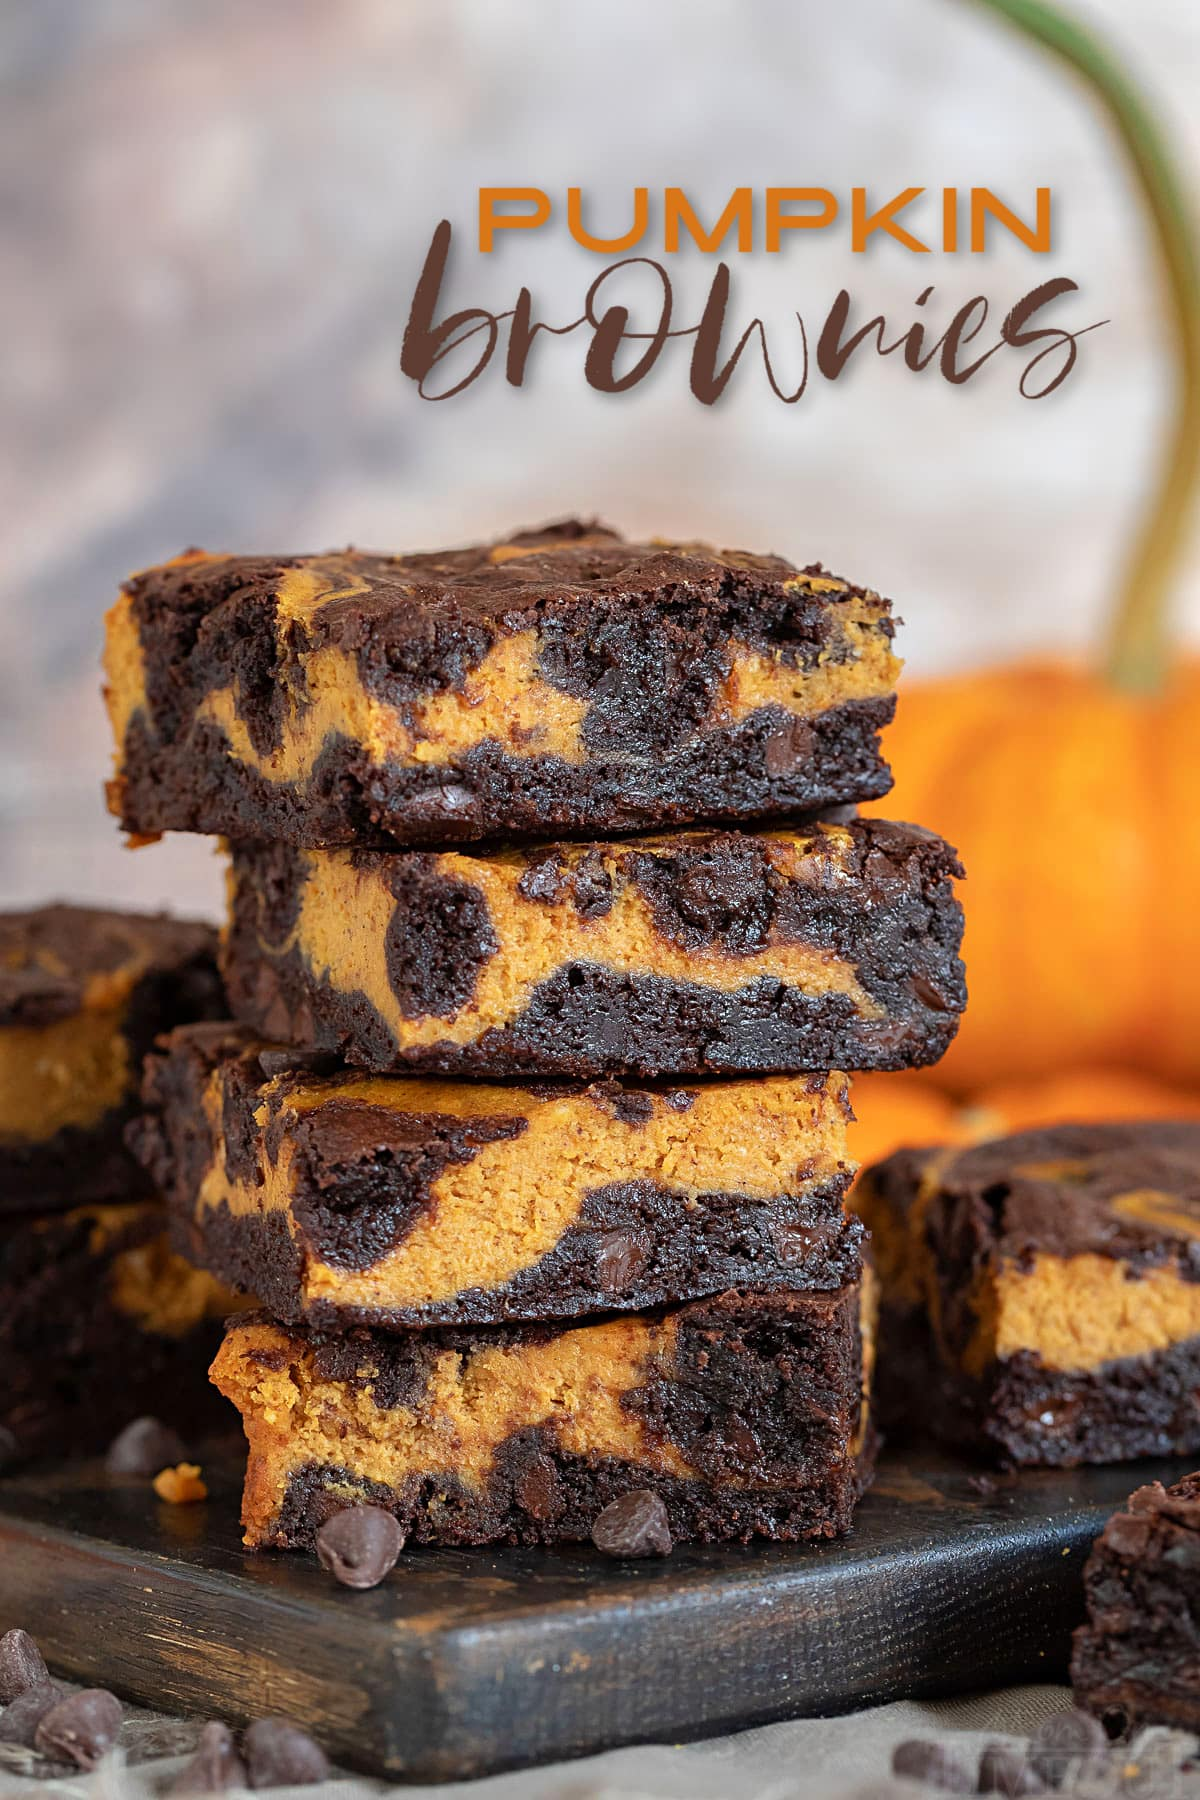 pumpkin brownies stacked 4 high on dark wood board with pumpkin in background and with text overlay